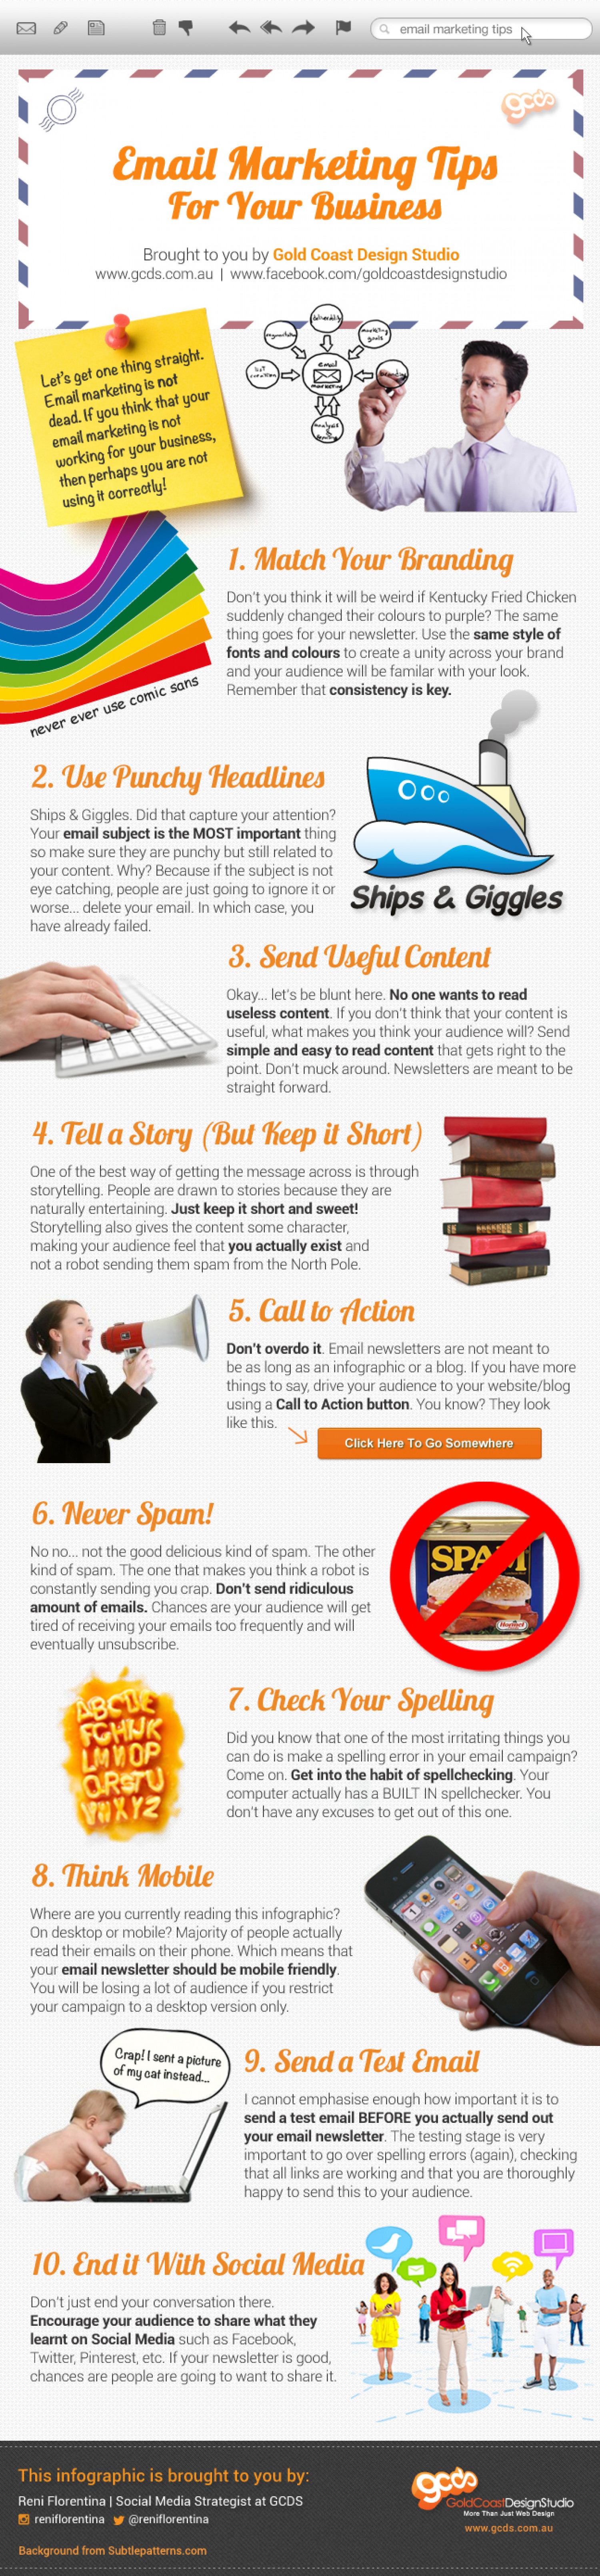 Email Marketing Tips For Your Business Infographic